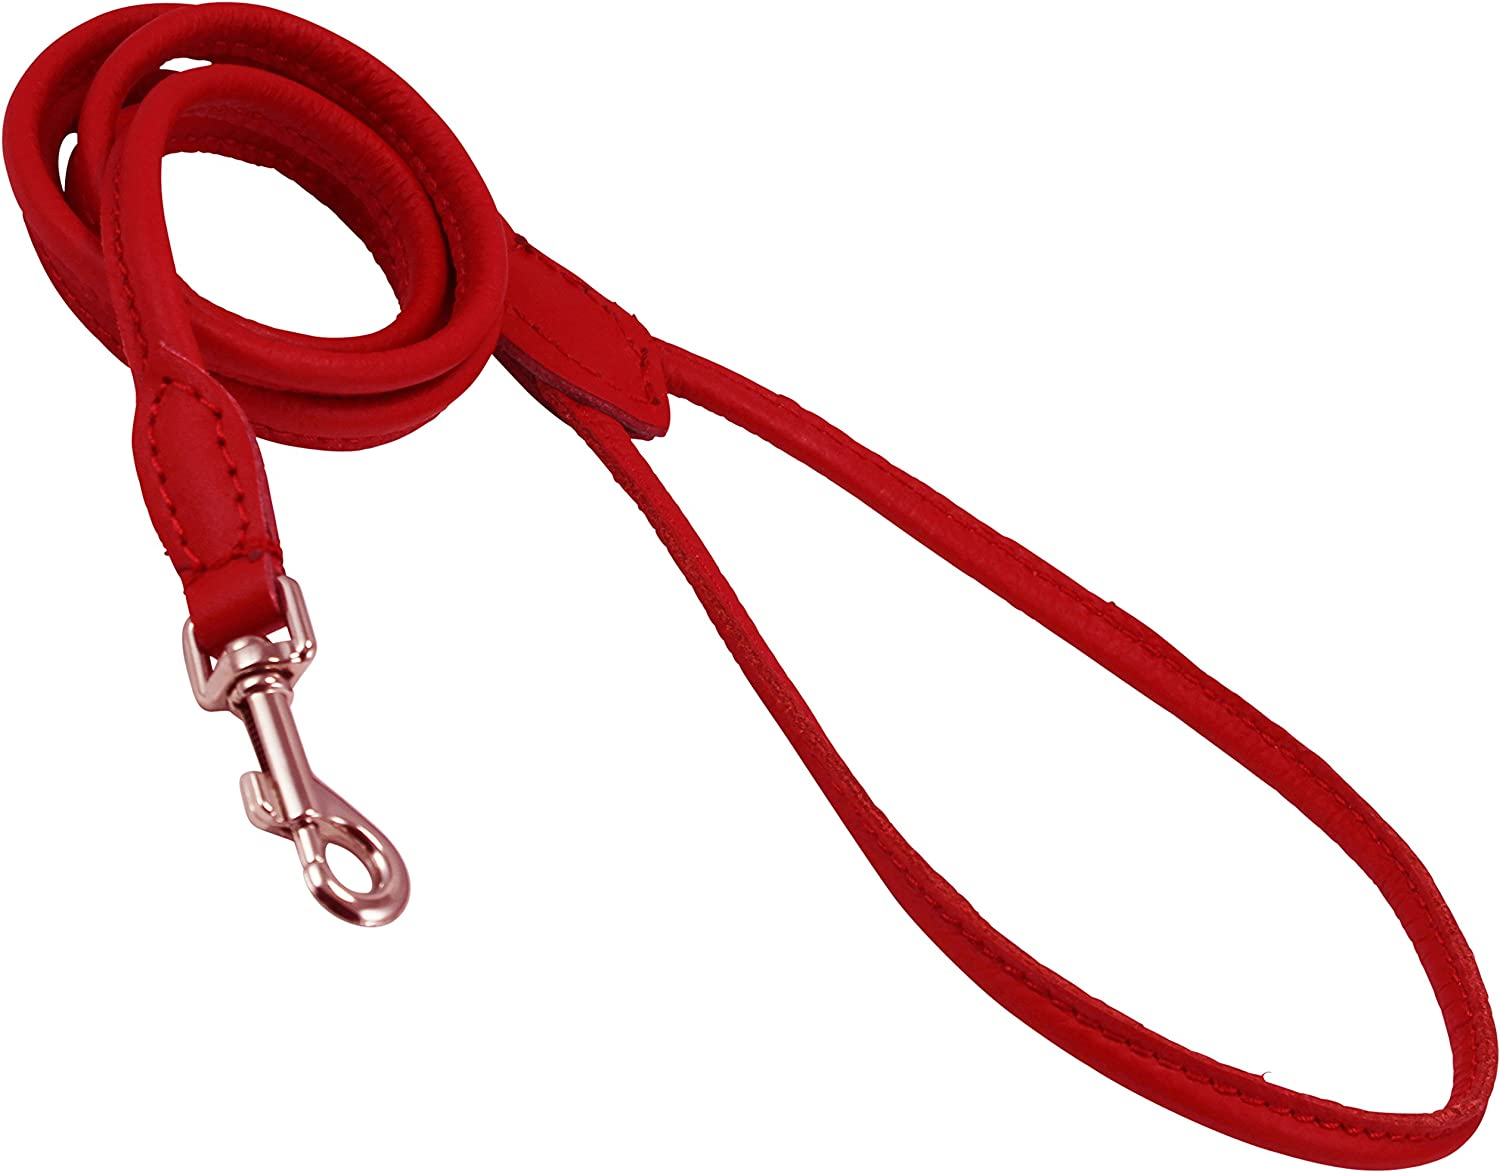 Dogs My Love 4ft Long Round Genuine Rolled Leather Dog Leash Red by Dogs My Love X-Small: 1//4 6mm